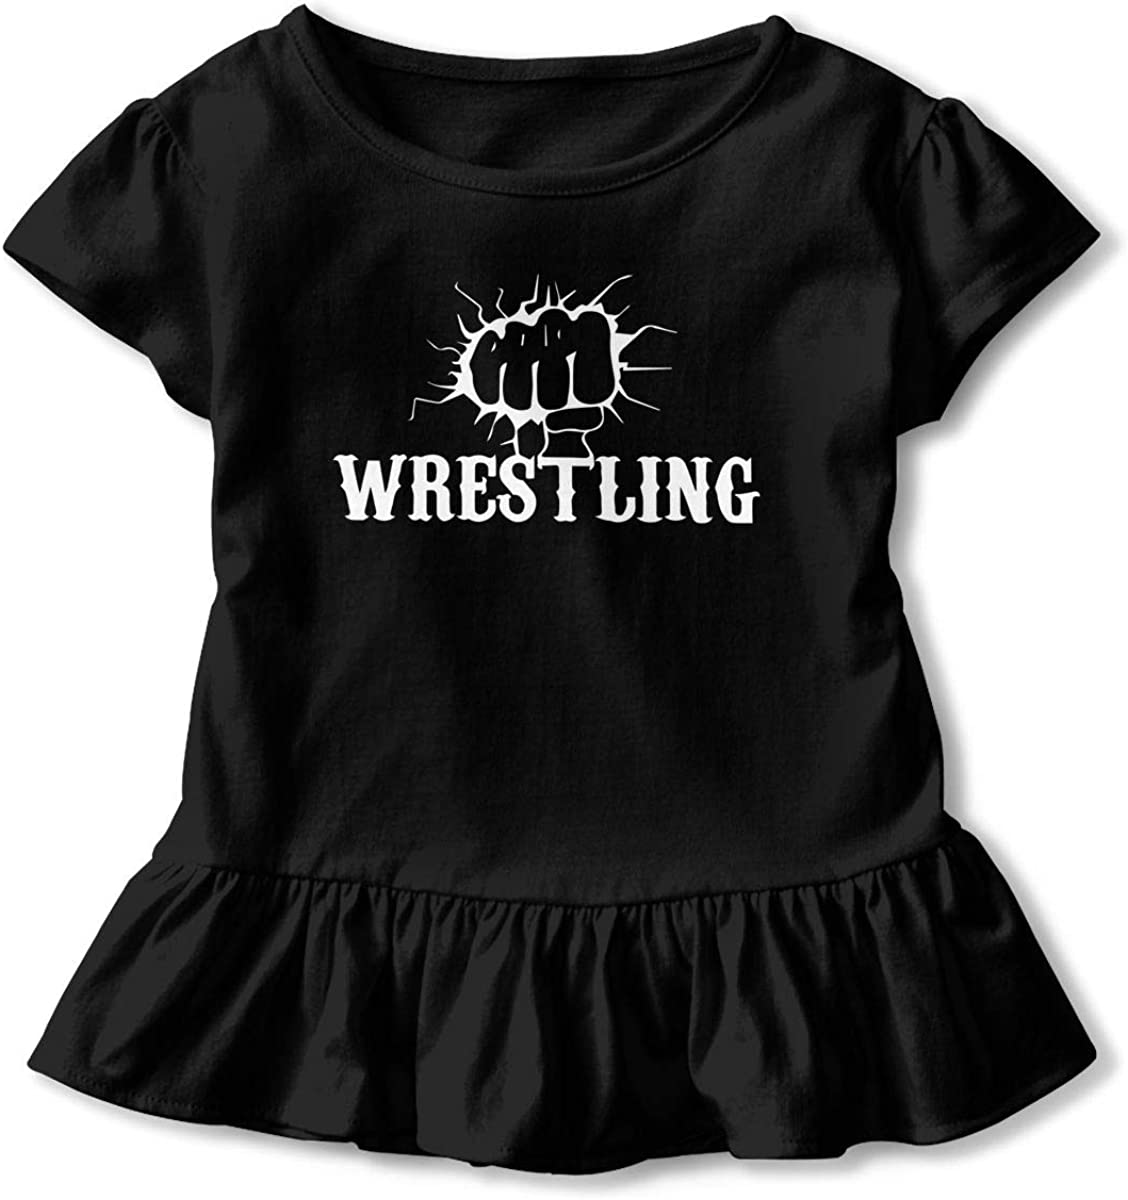 Cheng Jian Bo Funny Fist Wrestling Toddler Girls T Shirt Kids Cotton Short Sleeve Ruffle Tee